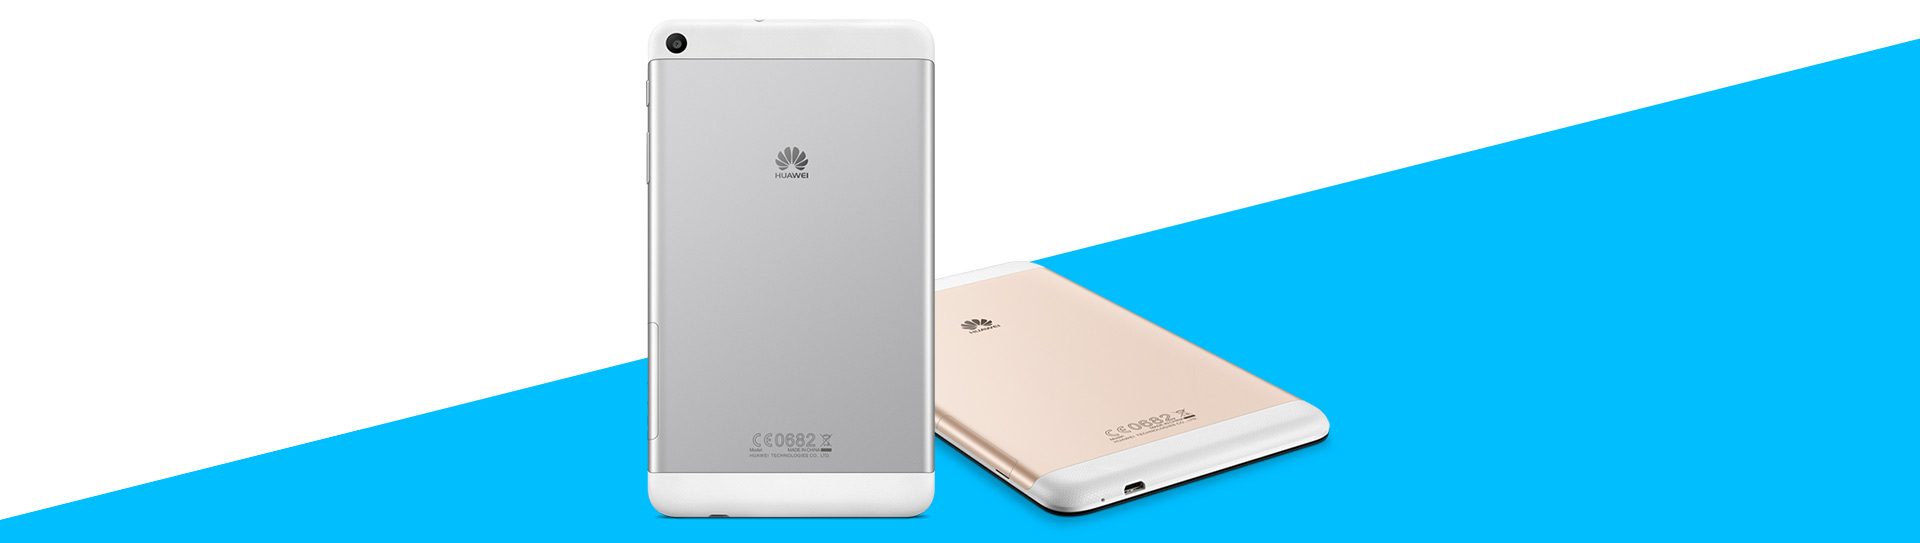 huawei tablet singapore